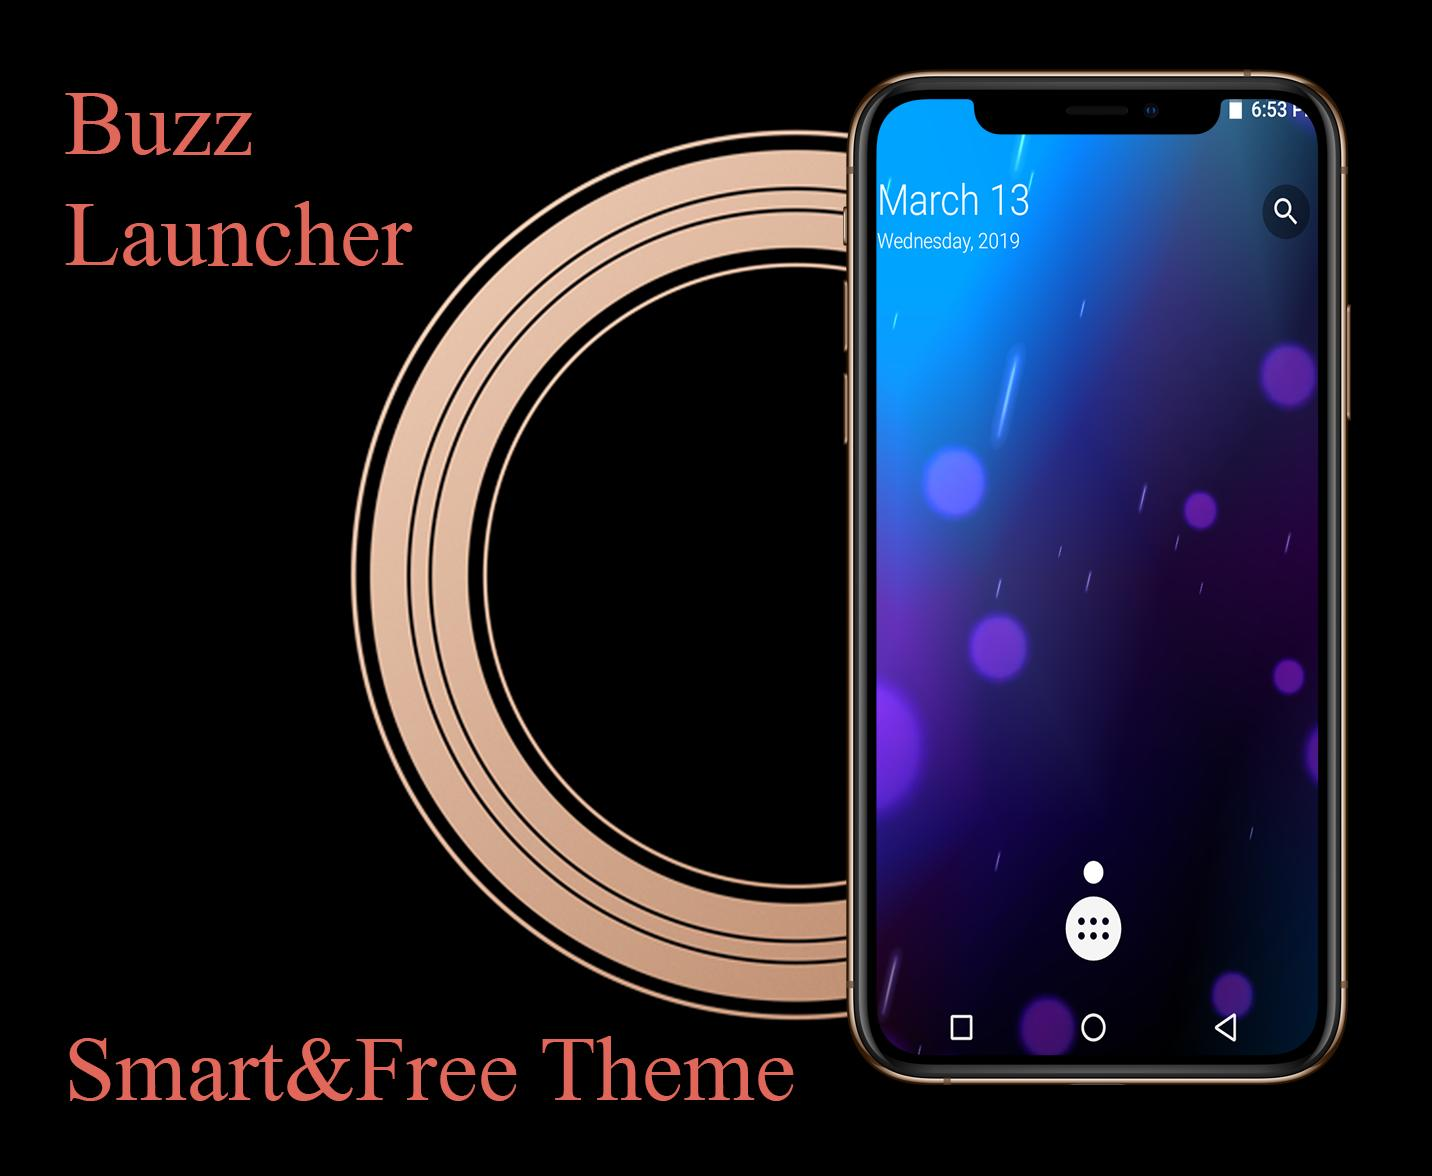 Buzz Launcher - 3D parallax Themes for Android - APK Download